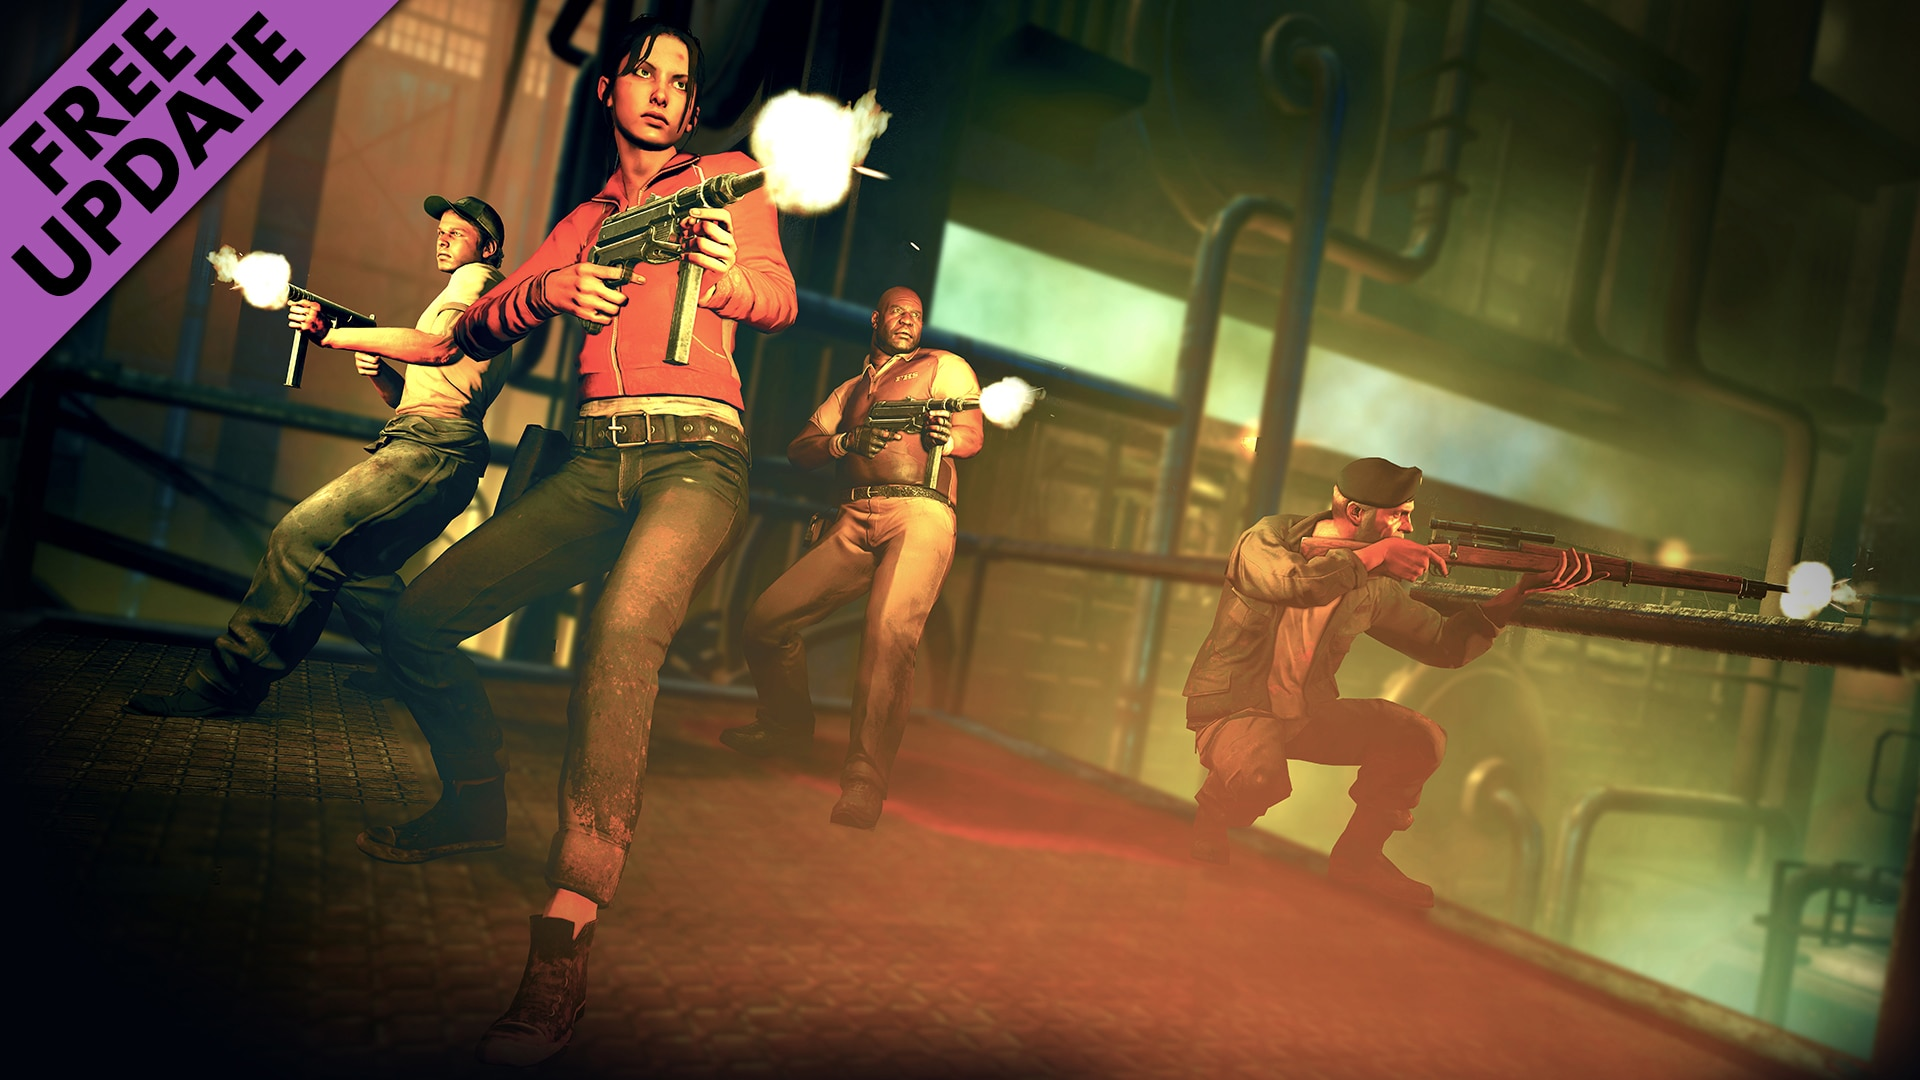 zombie army update - Left 4 Dead Cast Joins Zombie Army Trilogy in Free Update